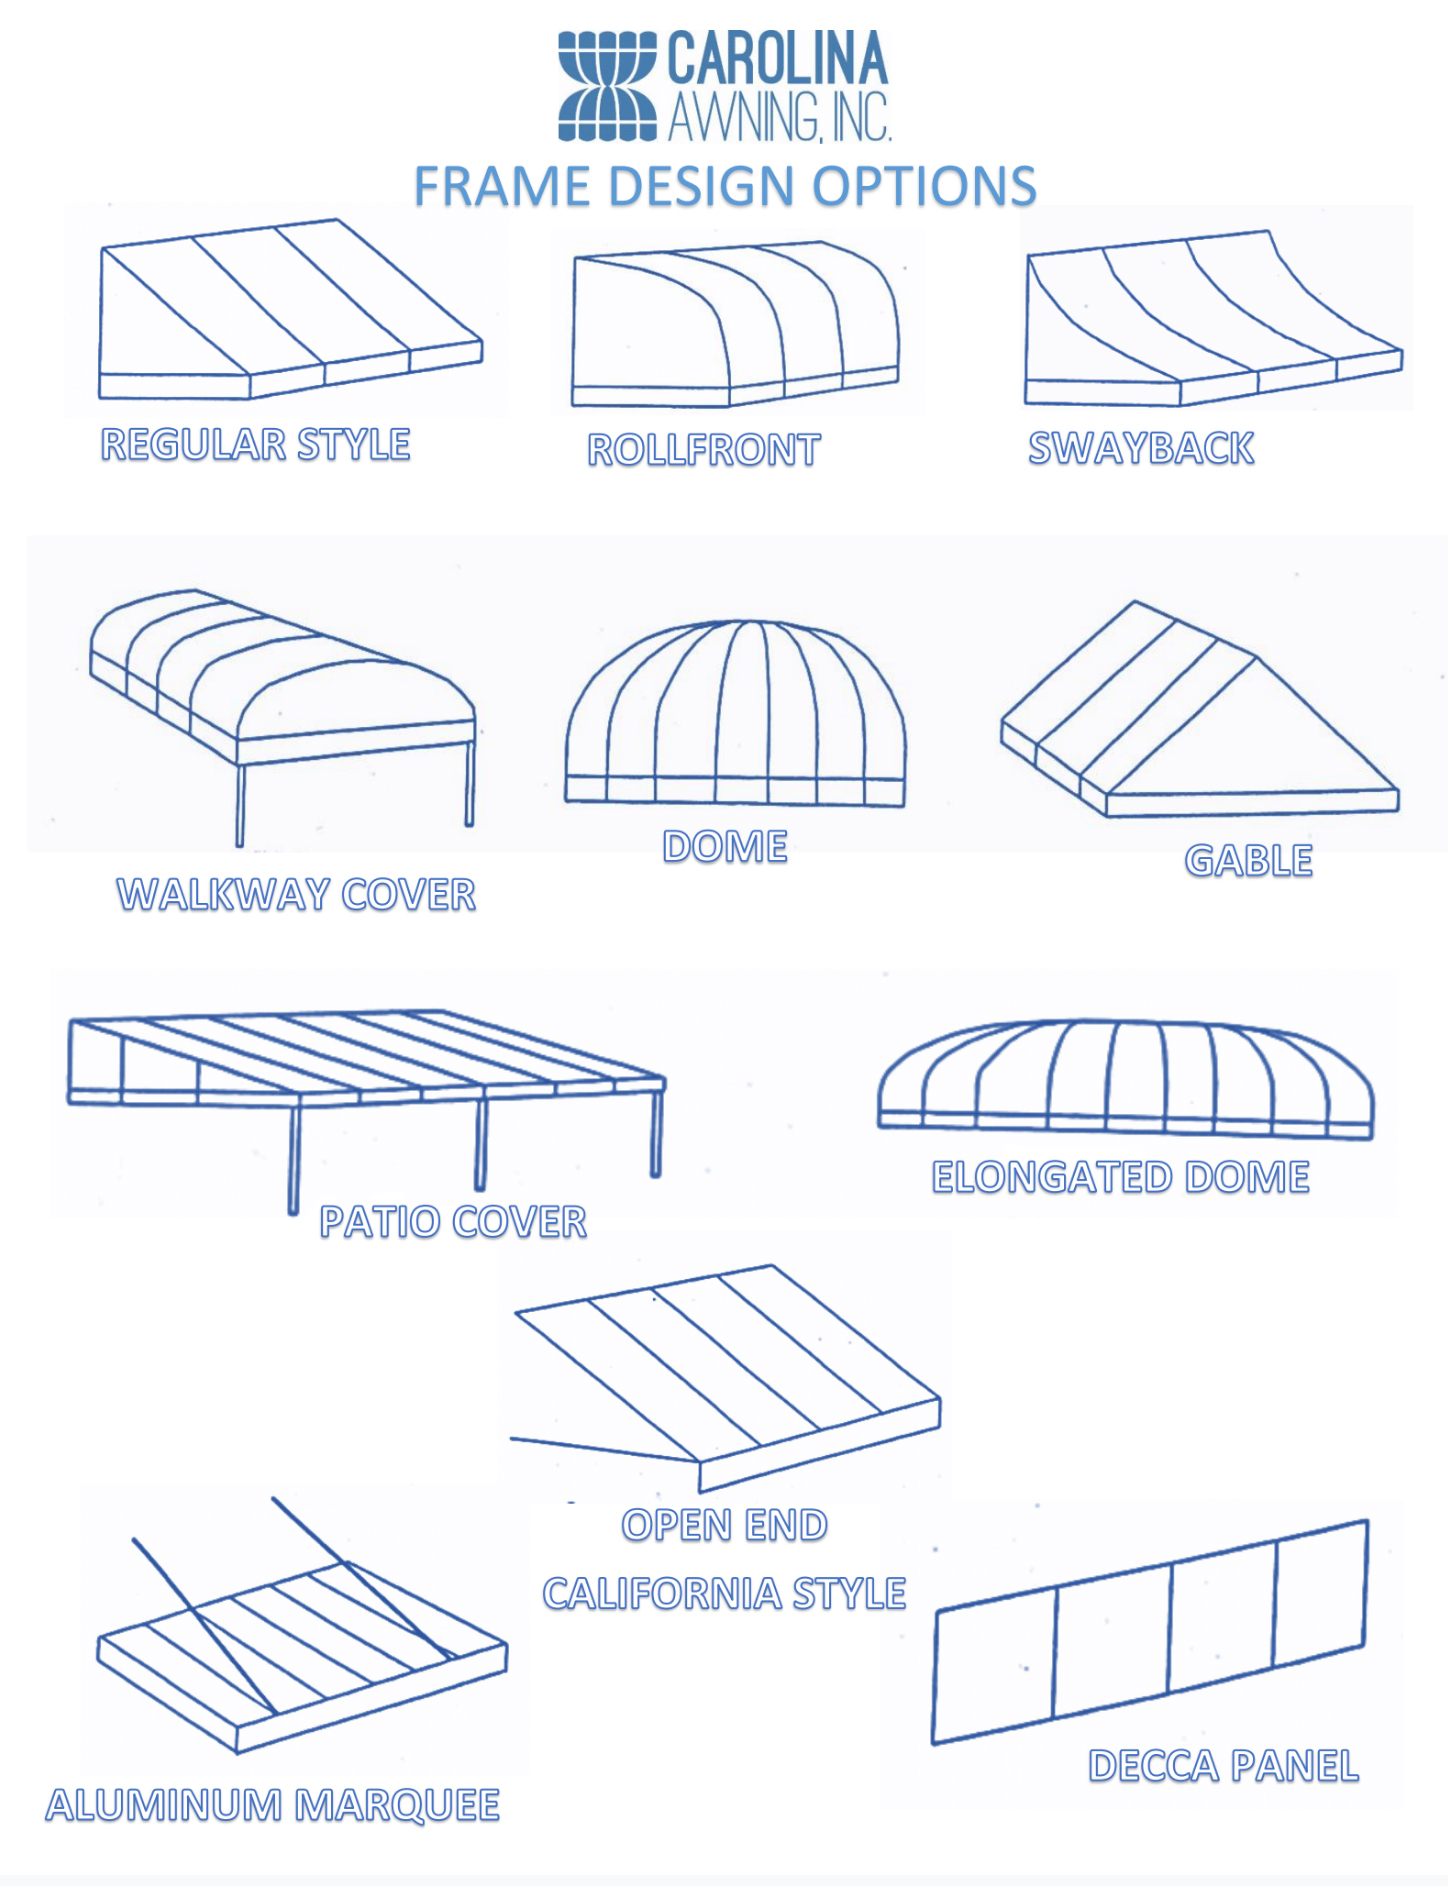 Frame Options: Regular Style, Rollfront, Swayback, Walkway Cover, Dome, Gable, Patio Cover, Elongated Dome, Open End California Style, Aluminum Marquee, Decca Panel